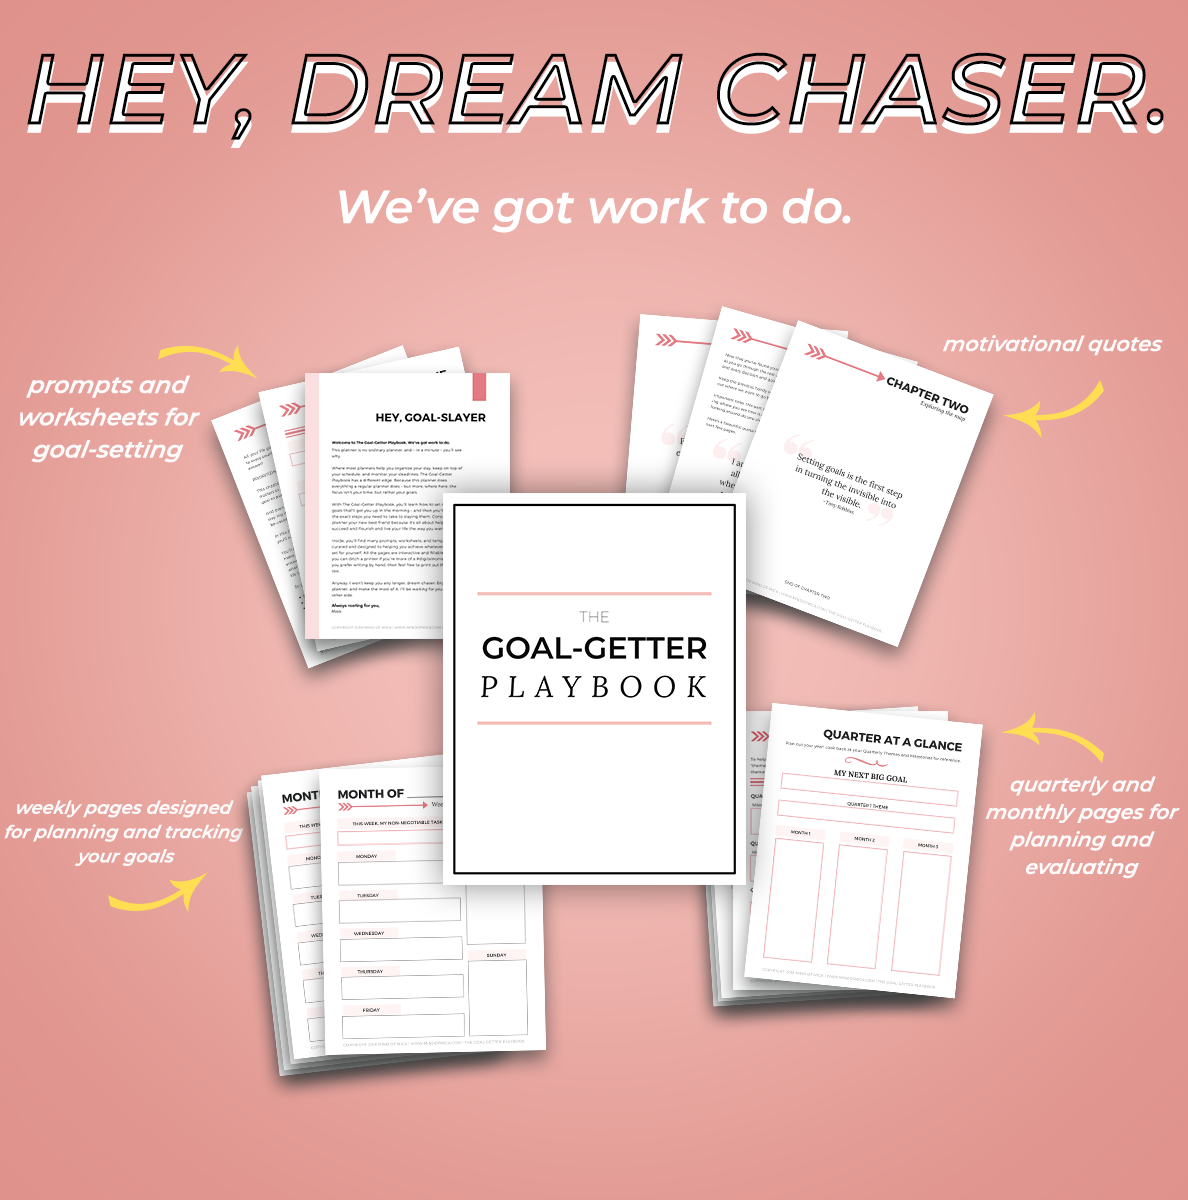 The Goal-Getter Playbook is a beautiful and fun way to set goals so that you actually achieve them.